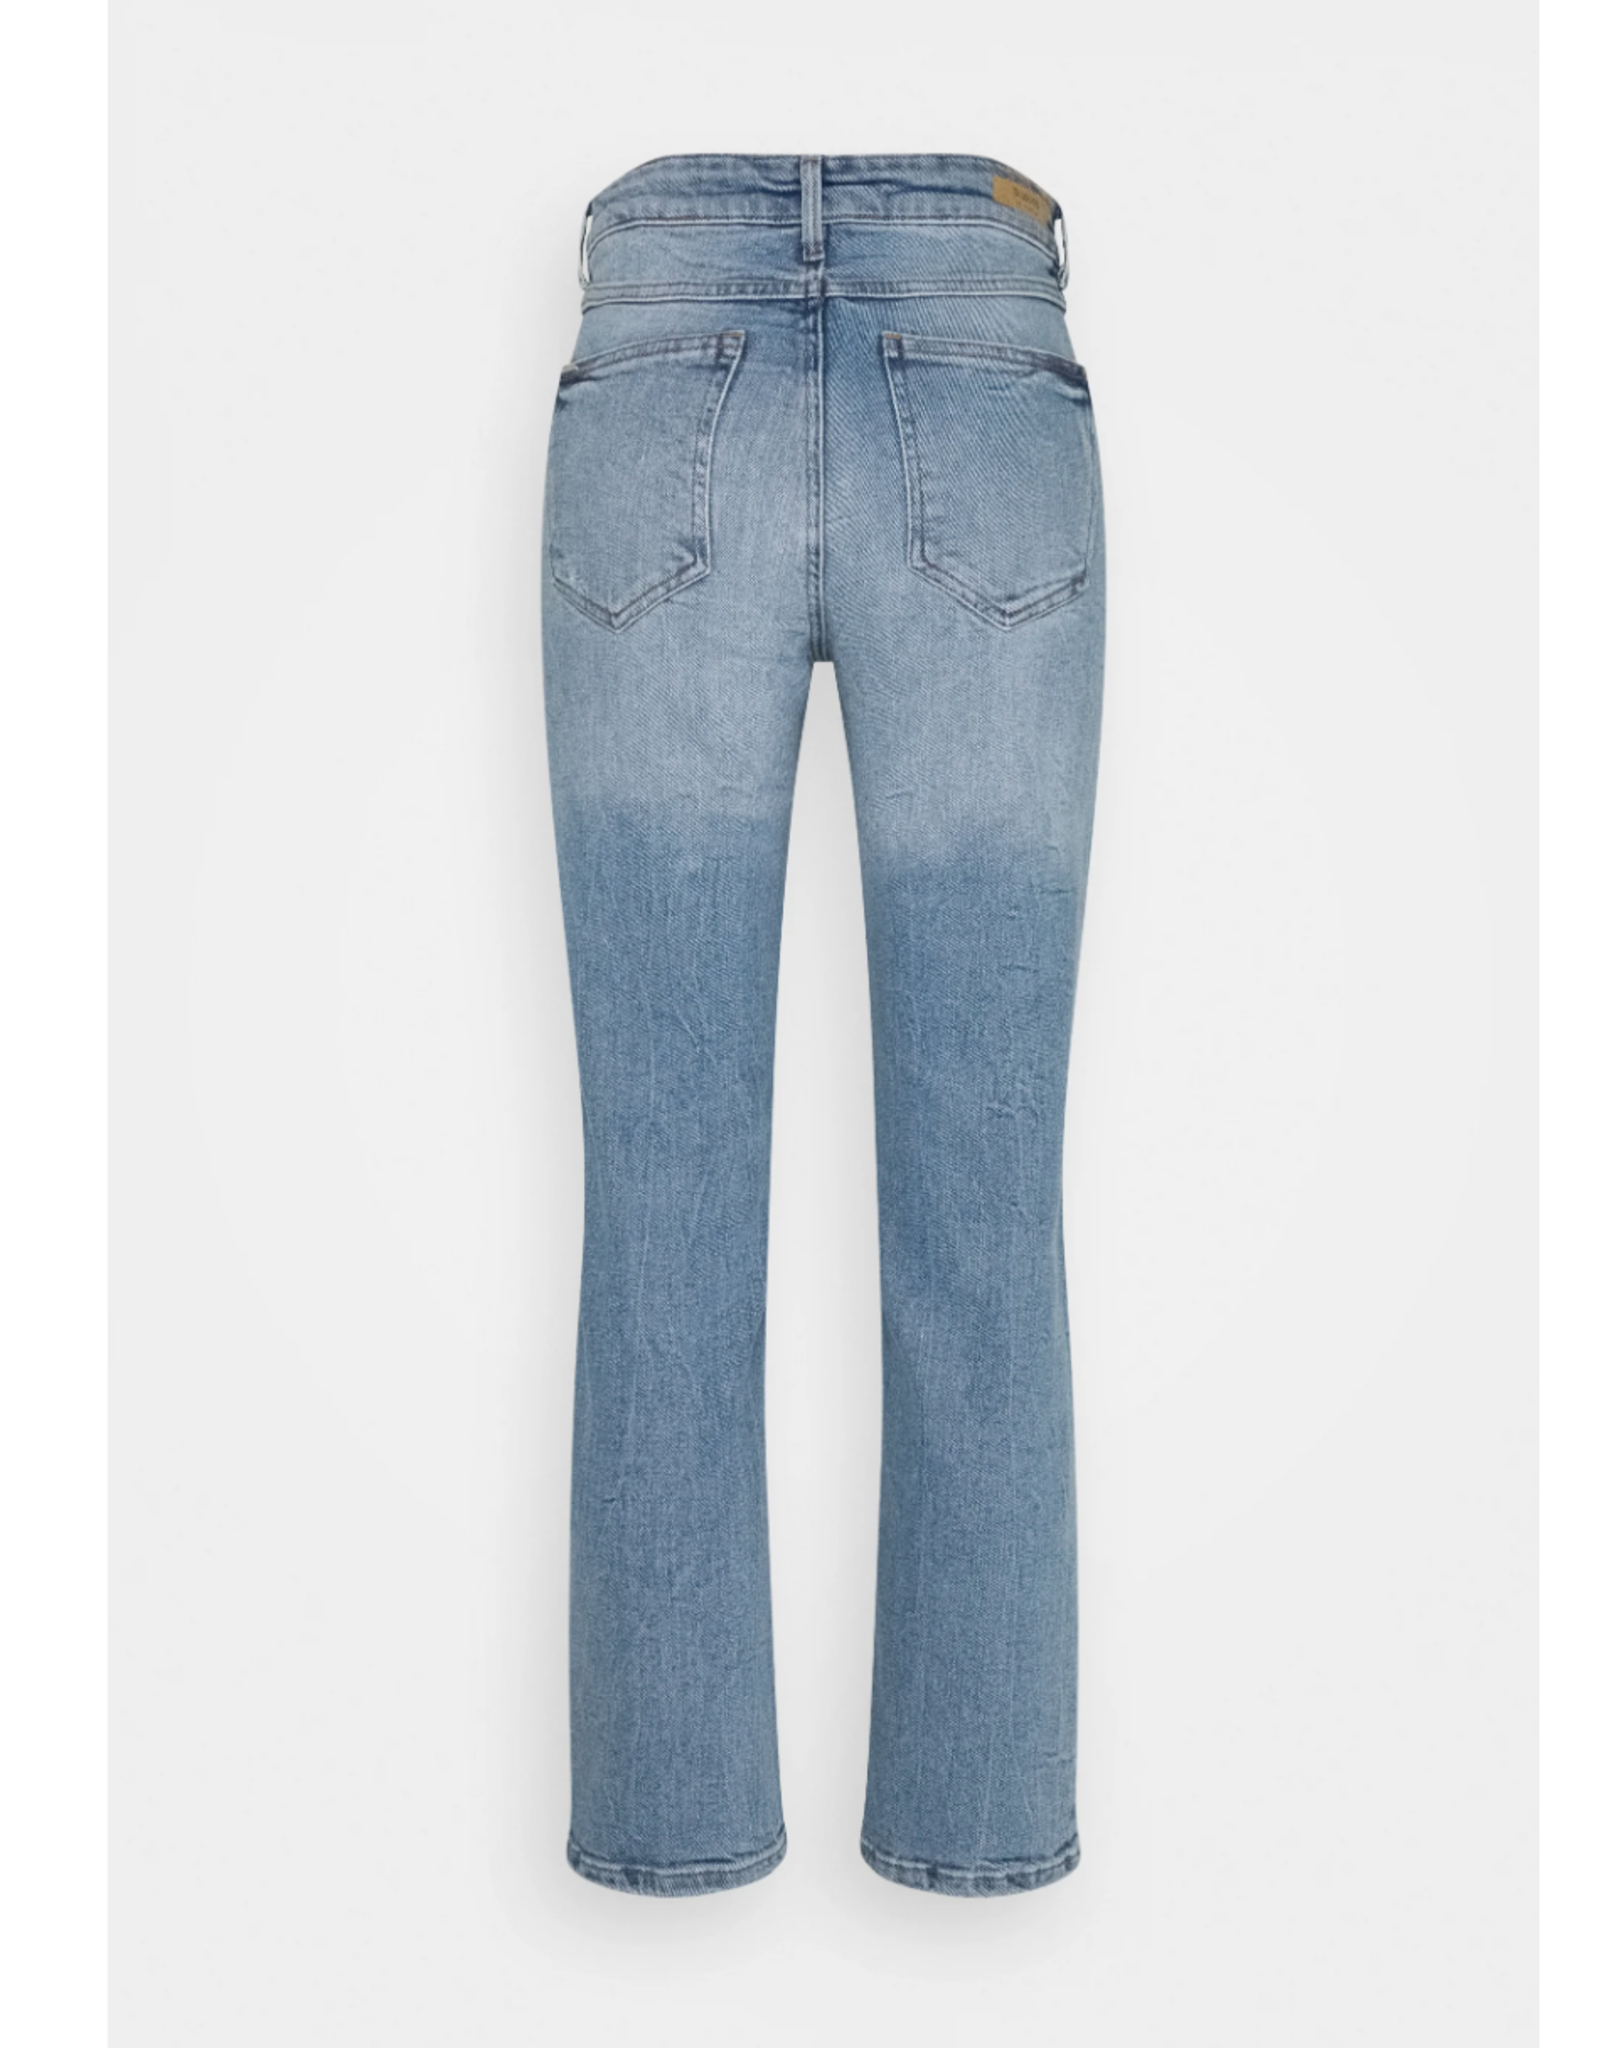 b.young b.young-bylola bykamille jeans